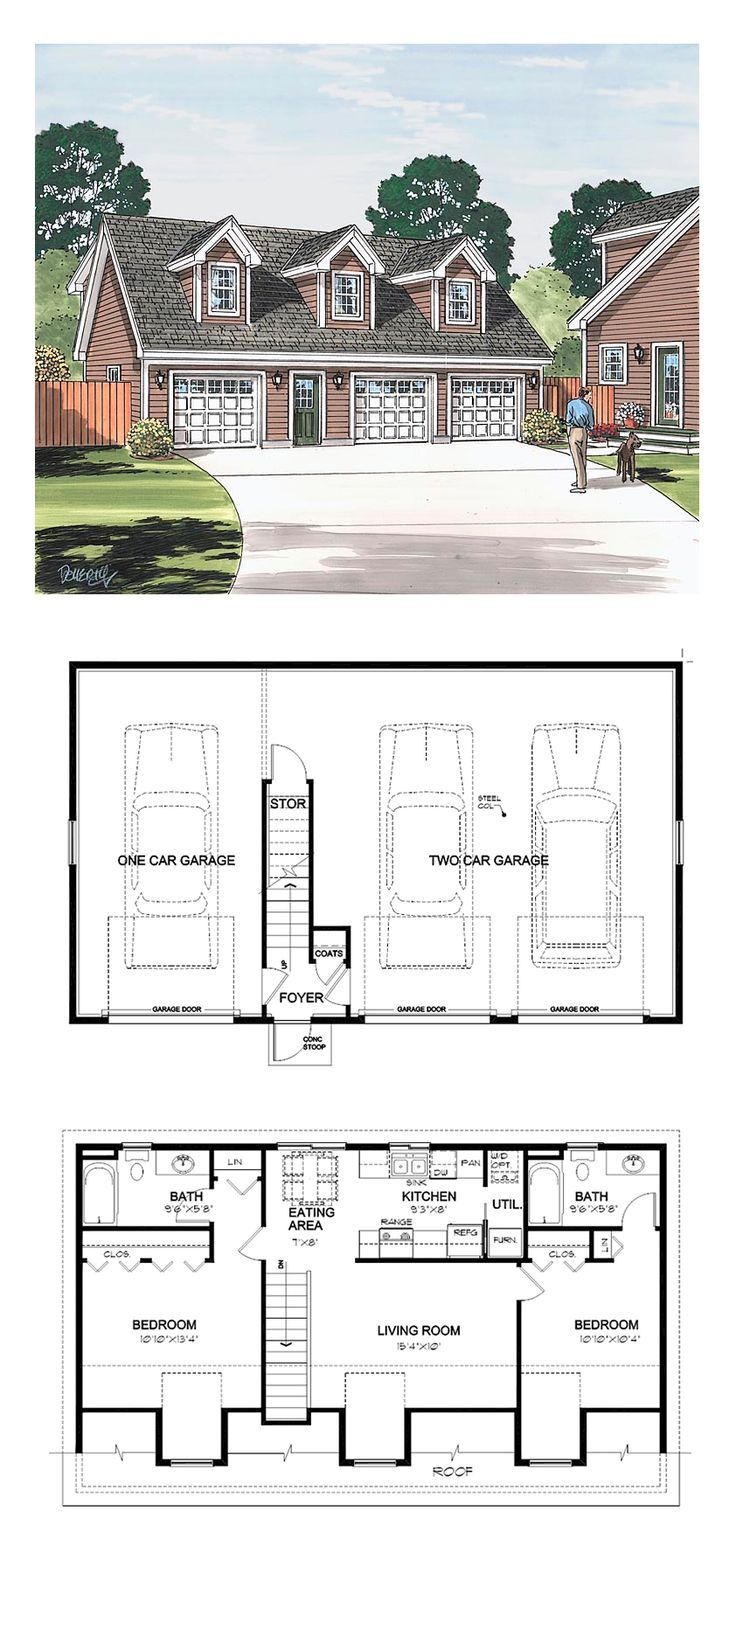 garage apartment plans. Download garage apartment plans for free to ...